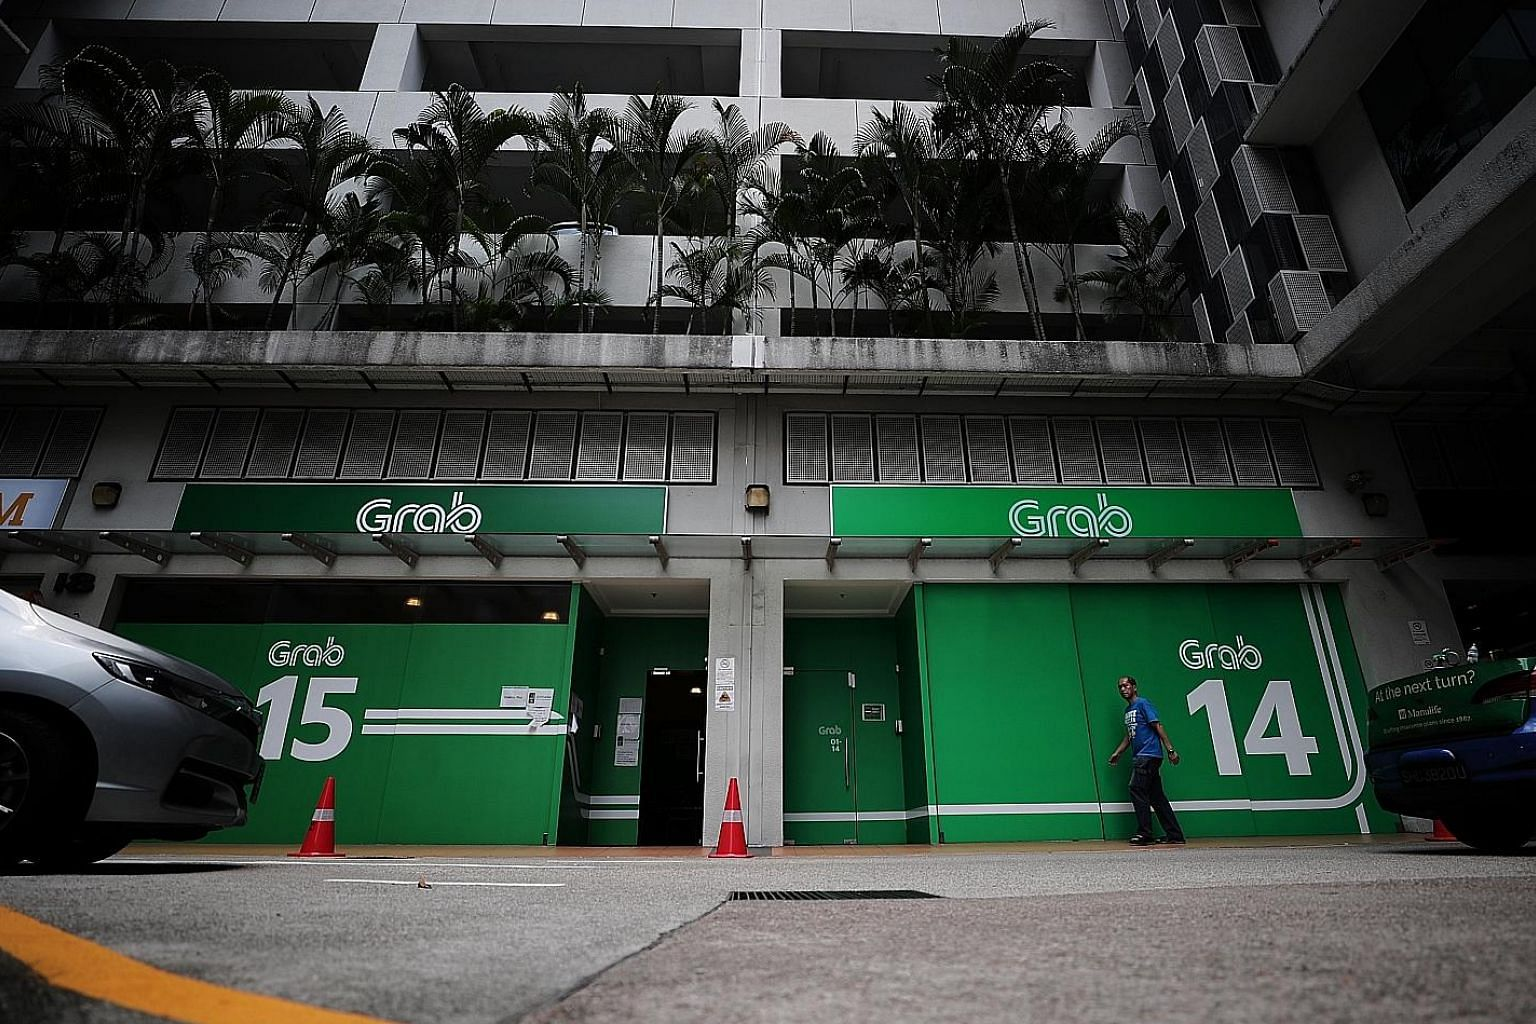 Under ride-hailing company Grab's new programme, a driver who hits 180 trips a week for one month, for example, can earn $10,888, before deducting costs such as rental and fuel. Grab guarantees gross monthly incomes of $6,888 to $11,888.